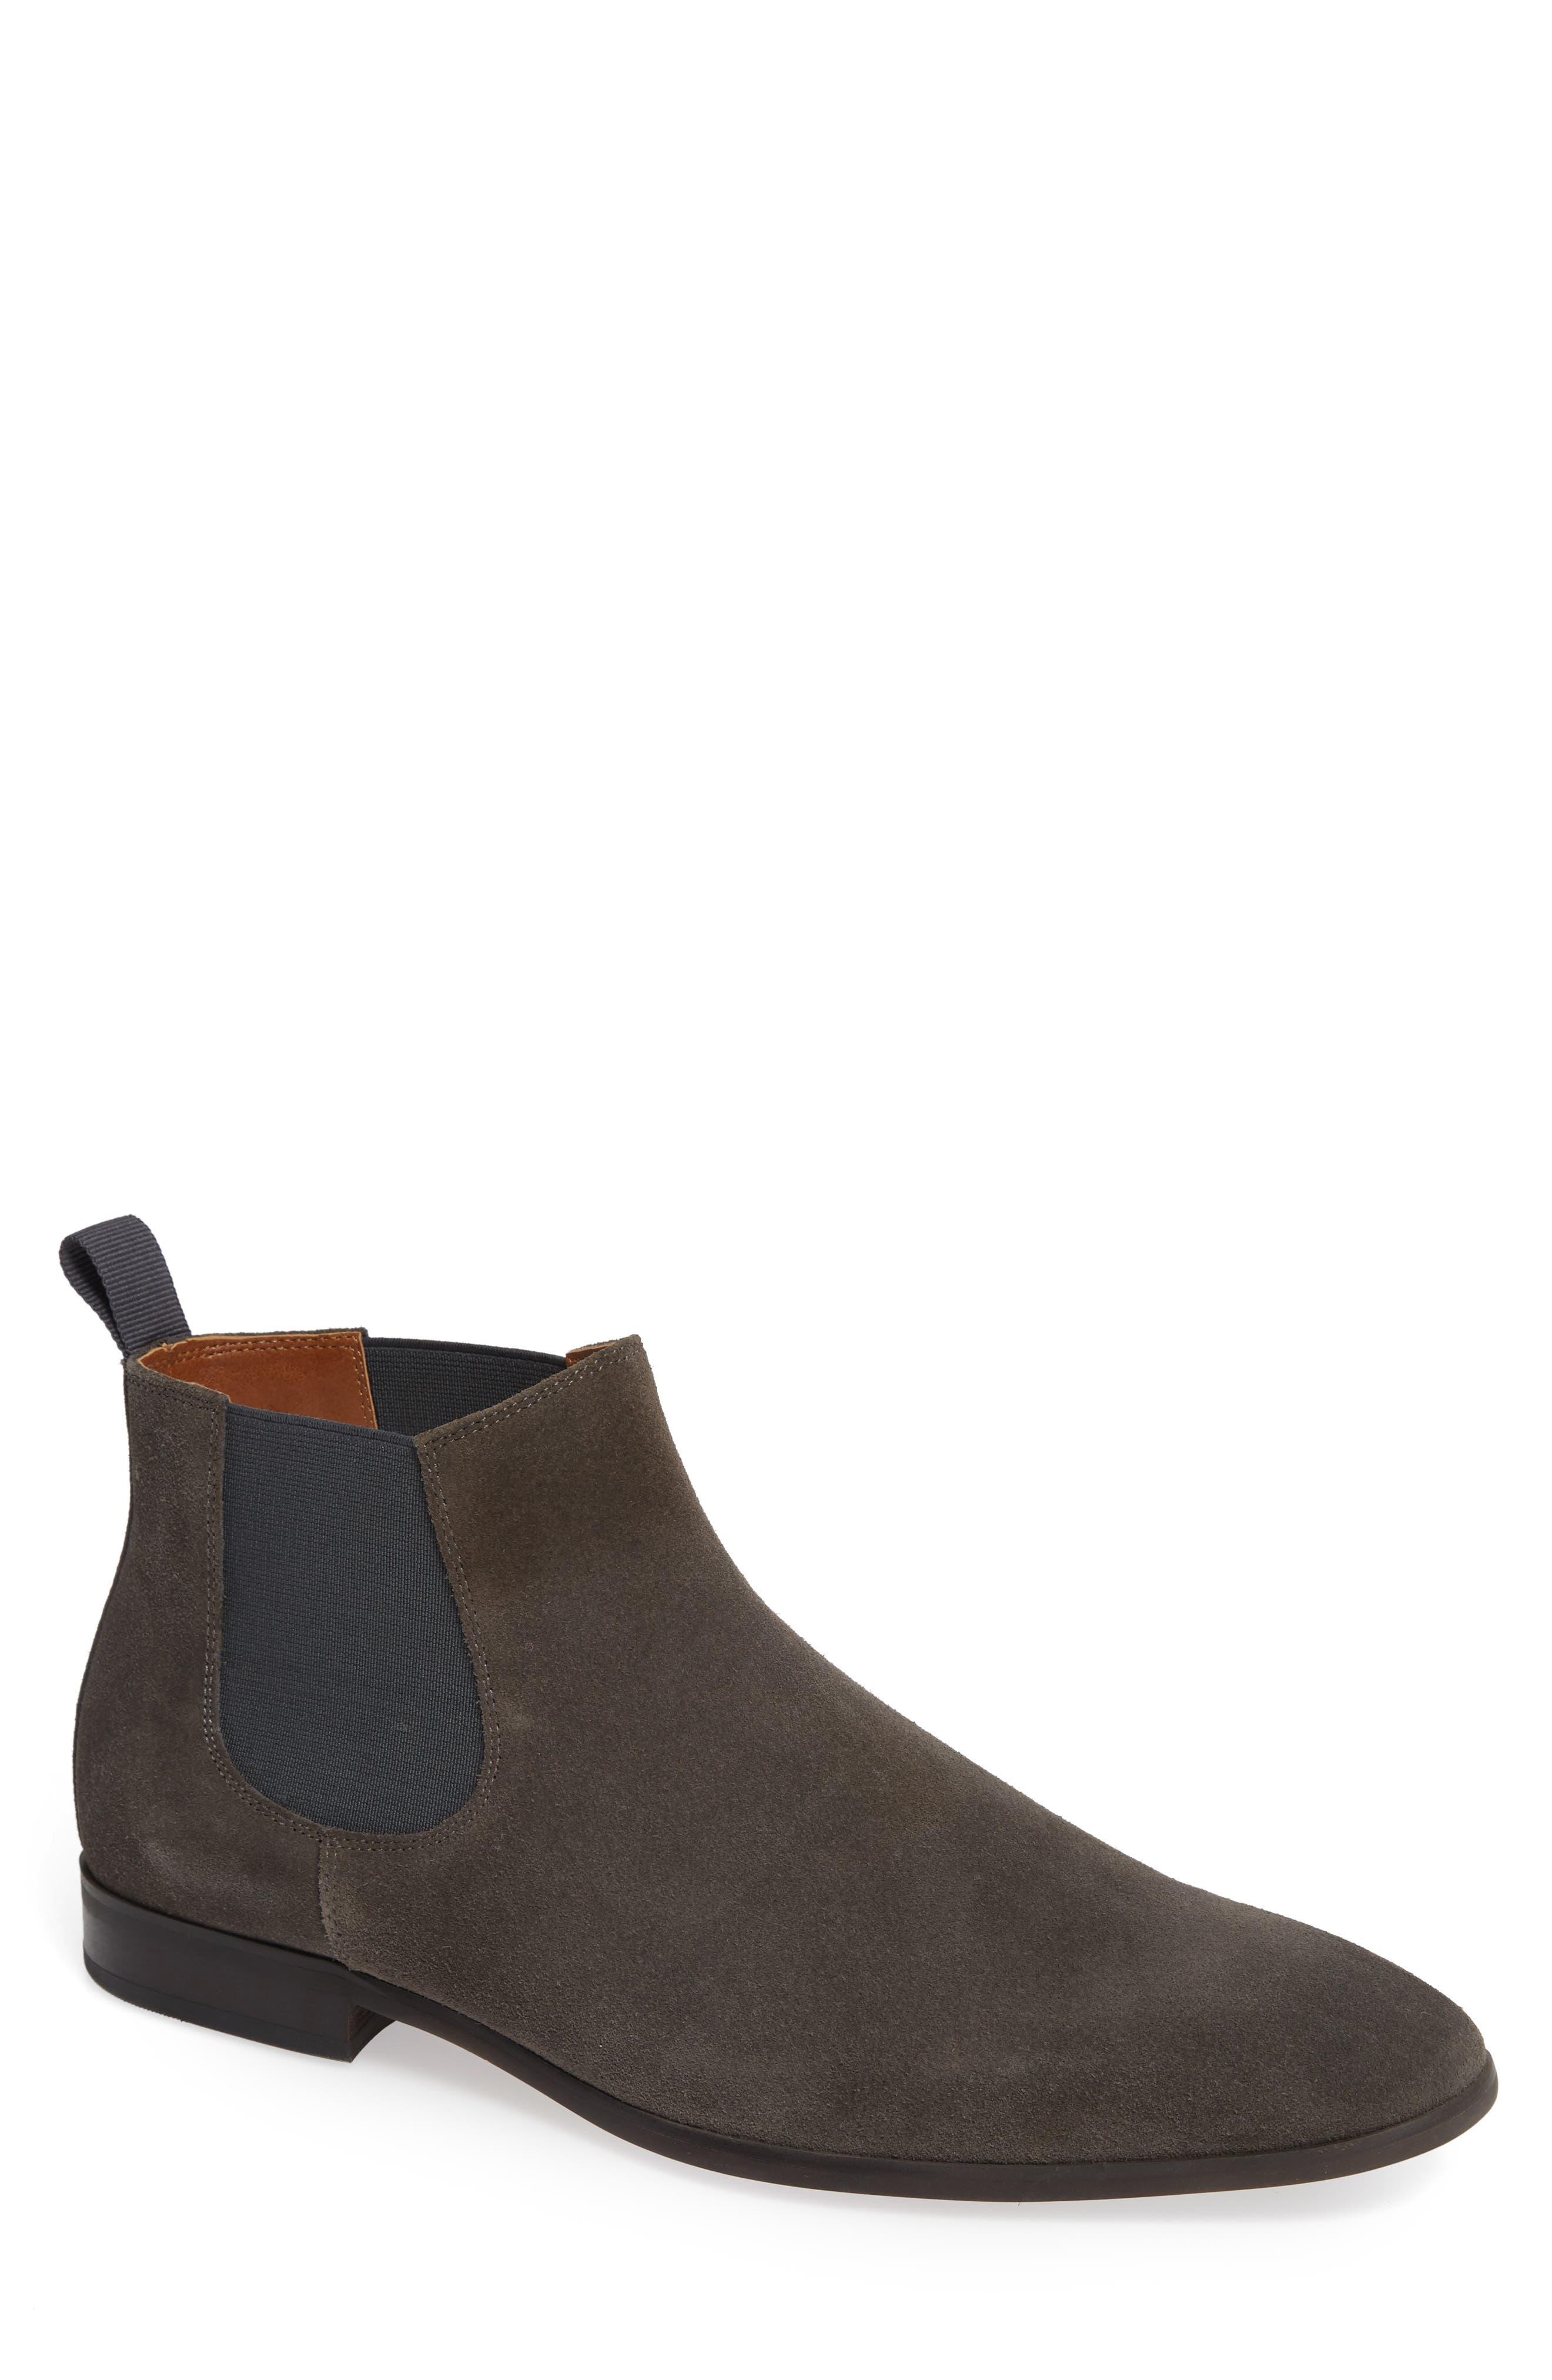 Edward Chelsea Boot,                         Main,                         color, CHARCOAL SUEDE